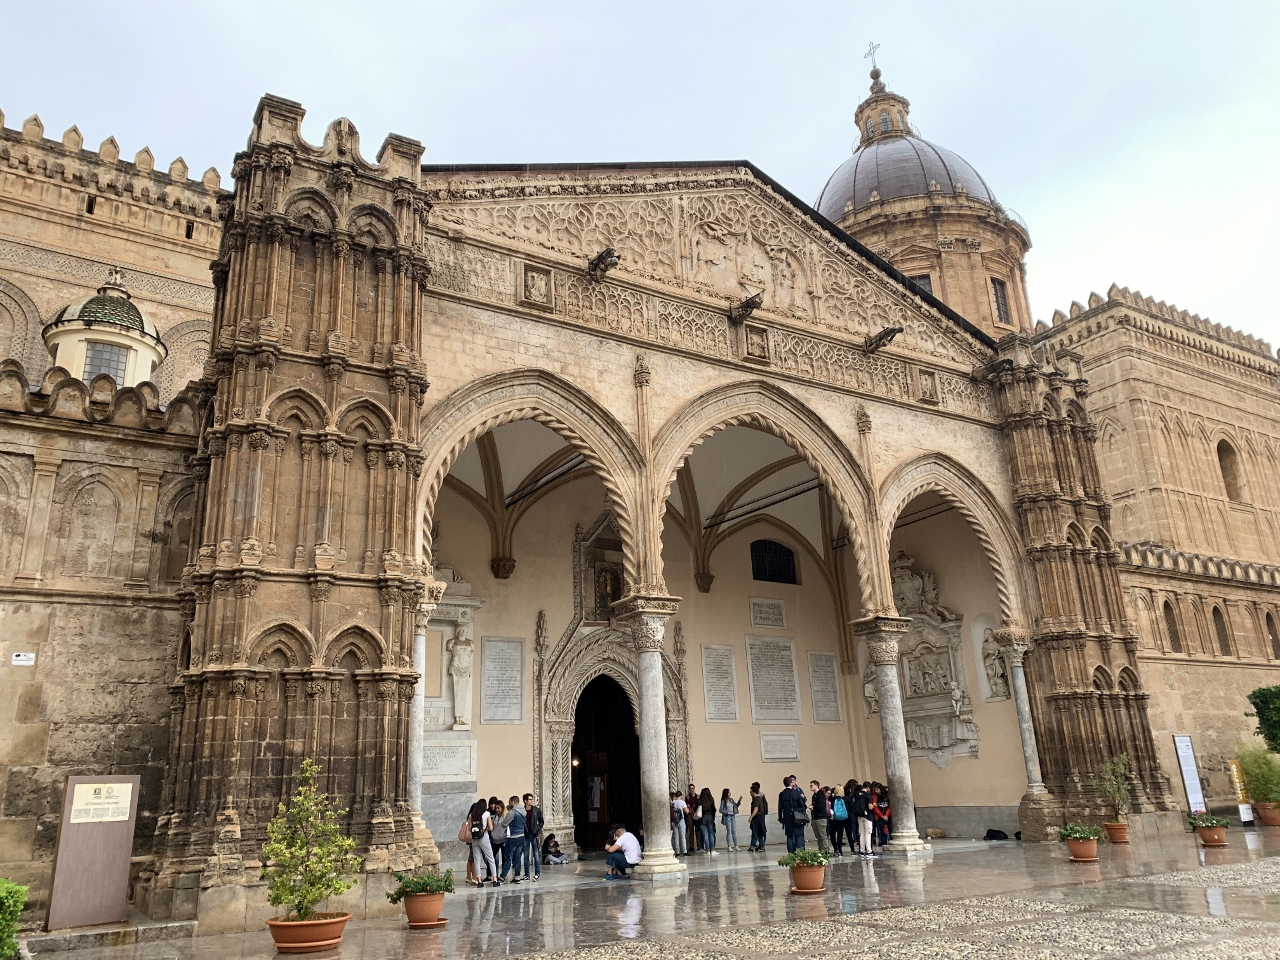 Travels to Sicily – Palermo & Monreale (Part 3 of 3) Image 14